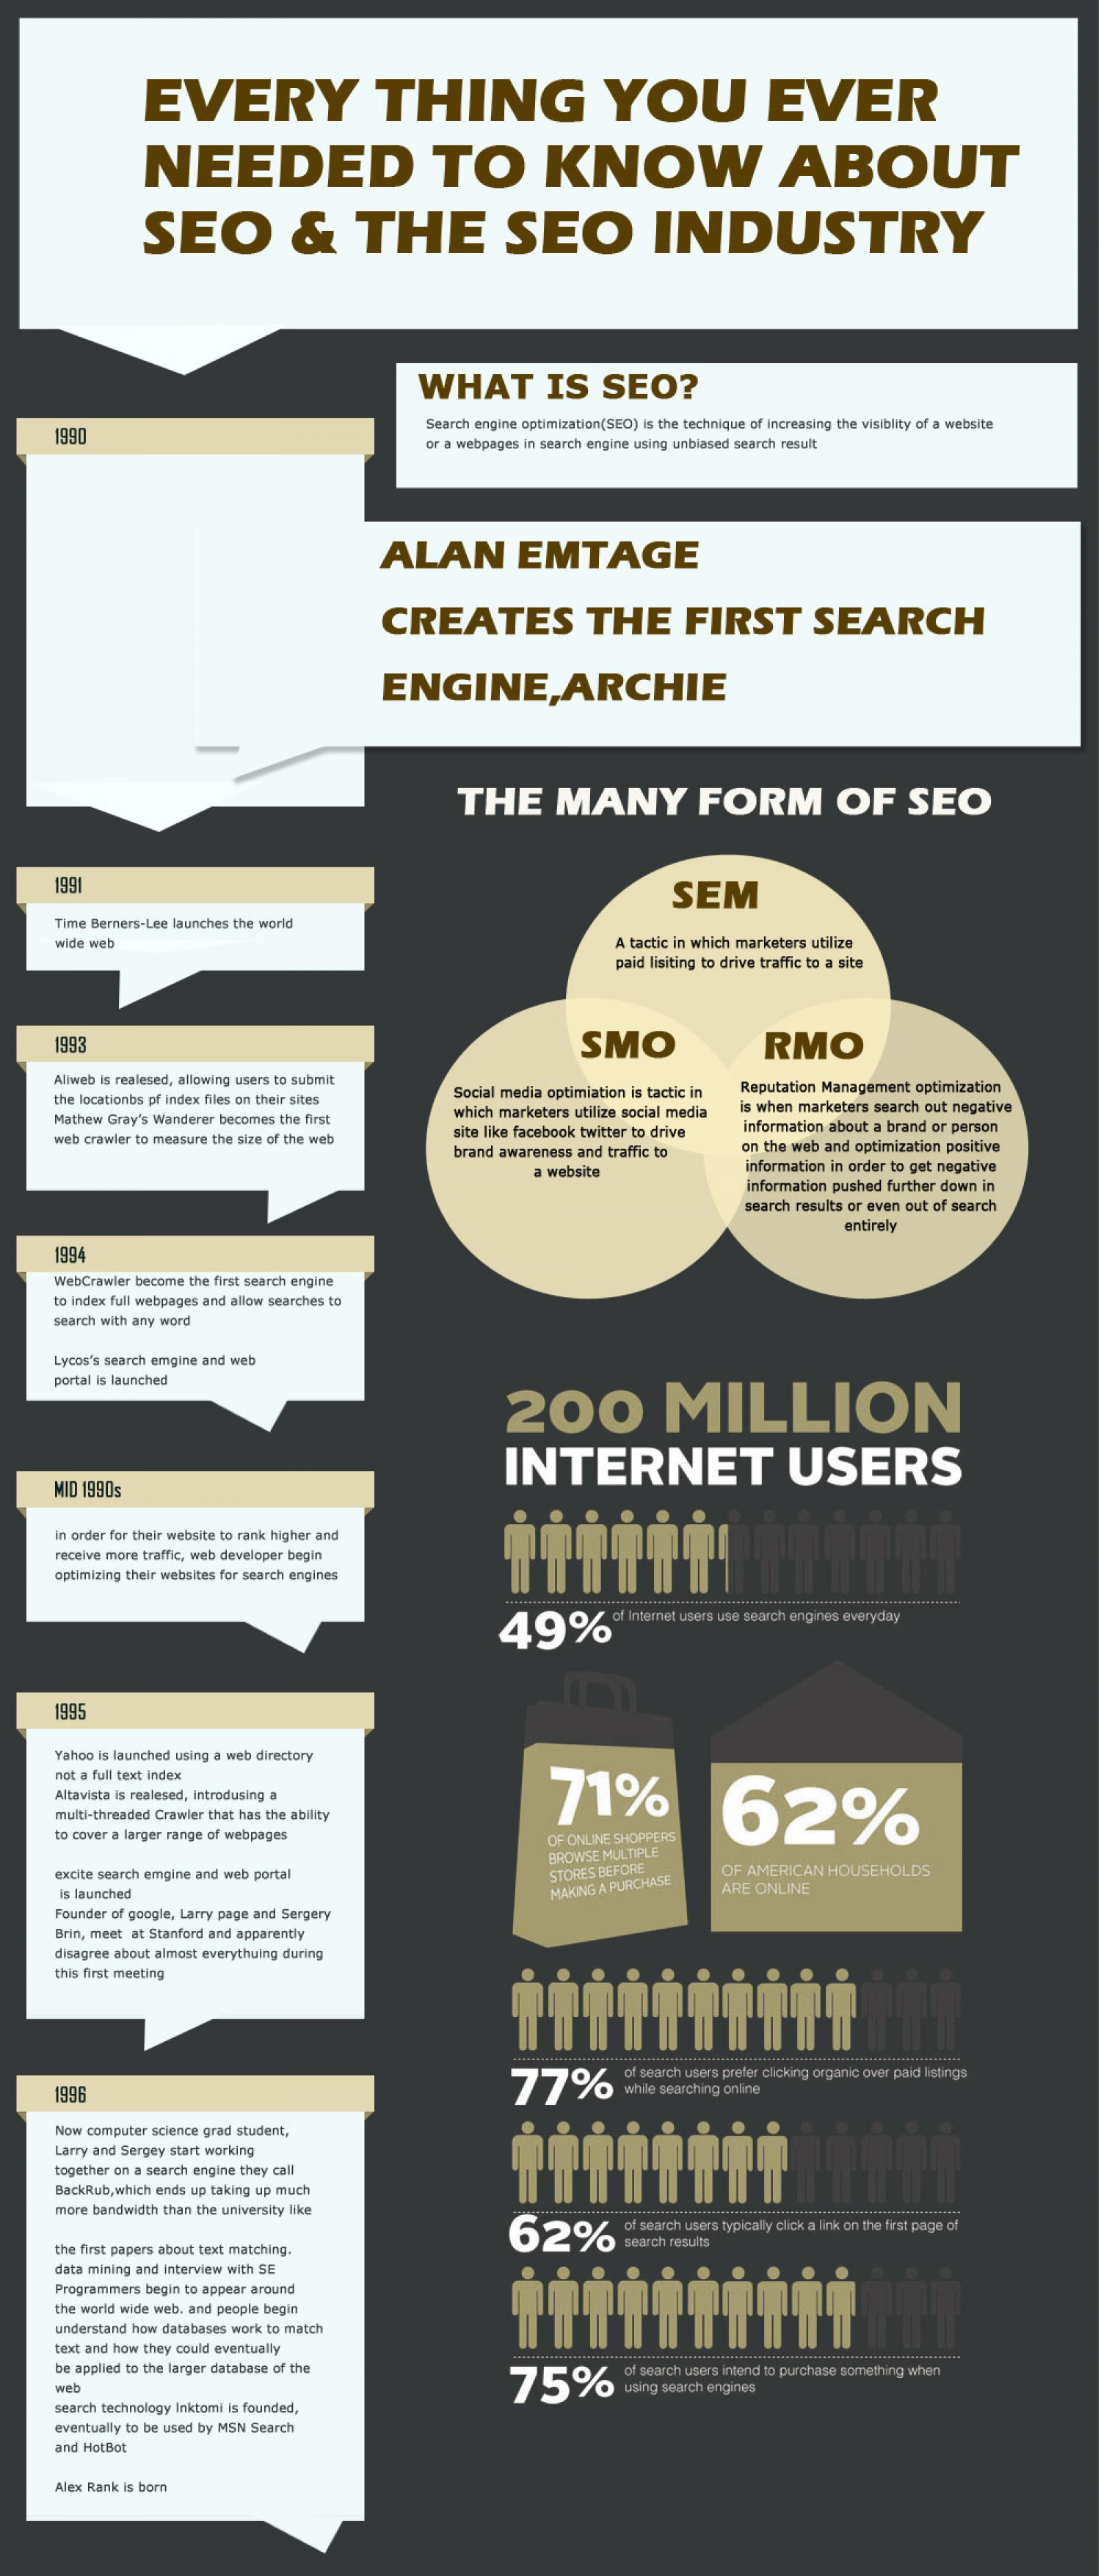 Every Thing You Ever Needed To Know About SEO & The SEO Industry By EBriks Infotech Infographic